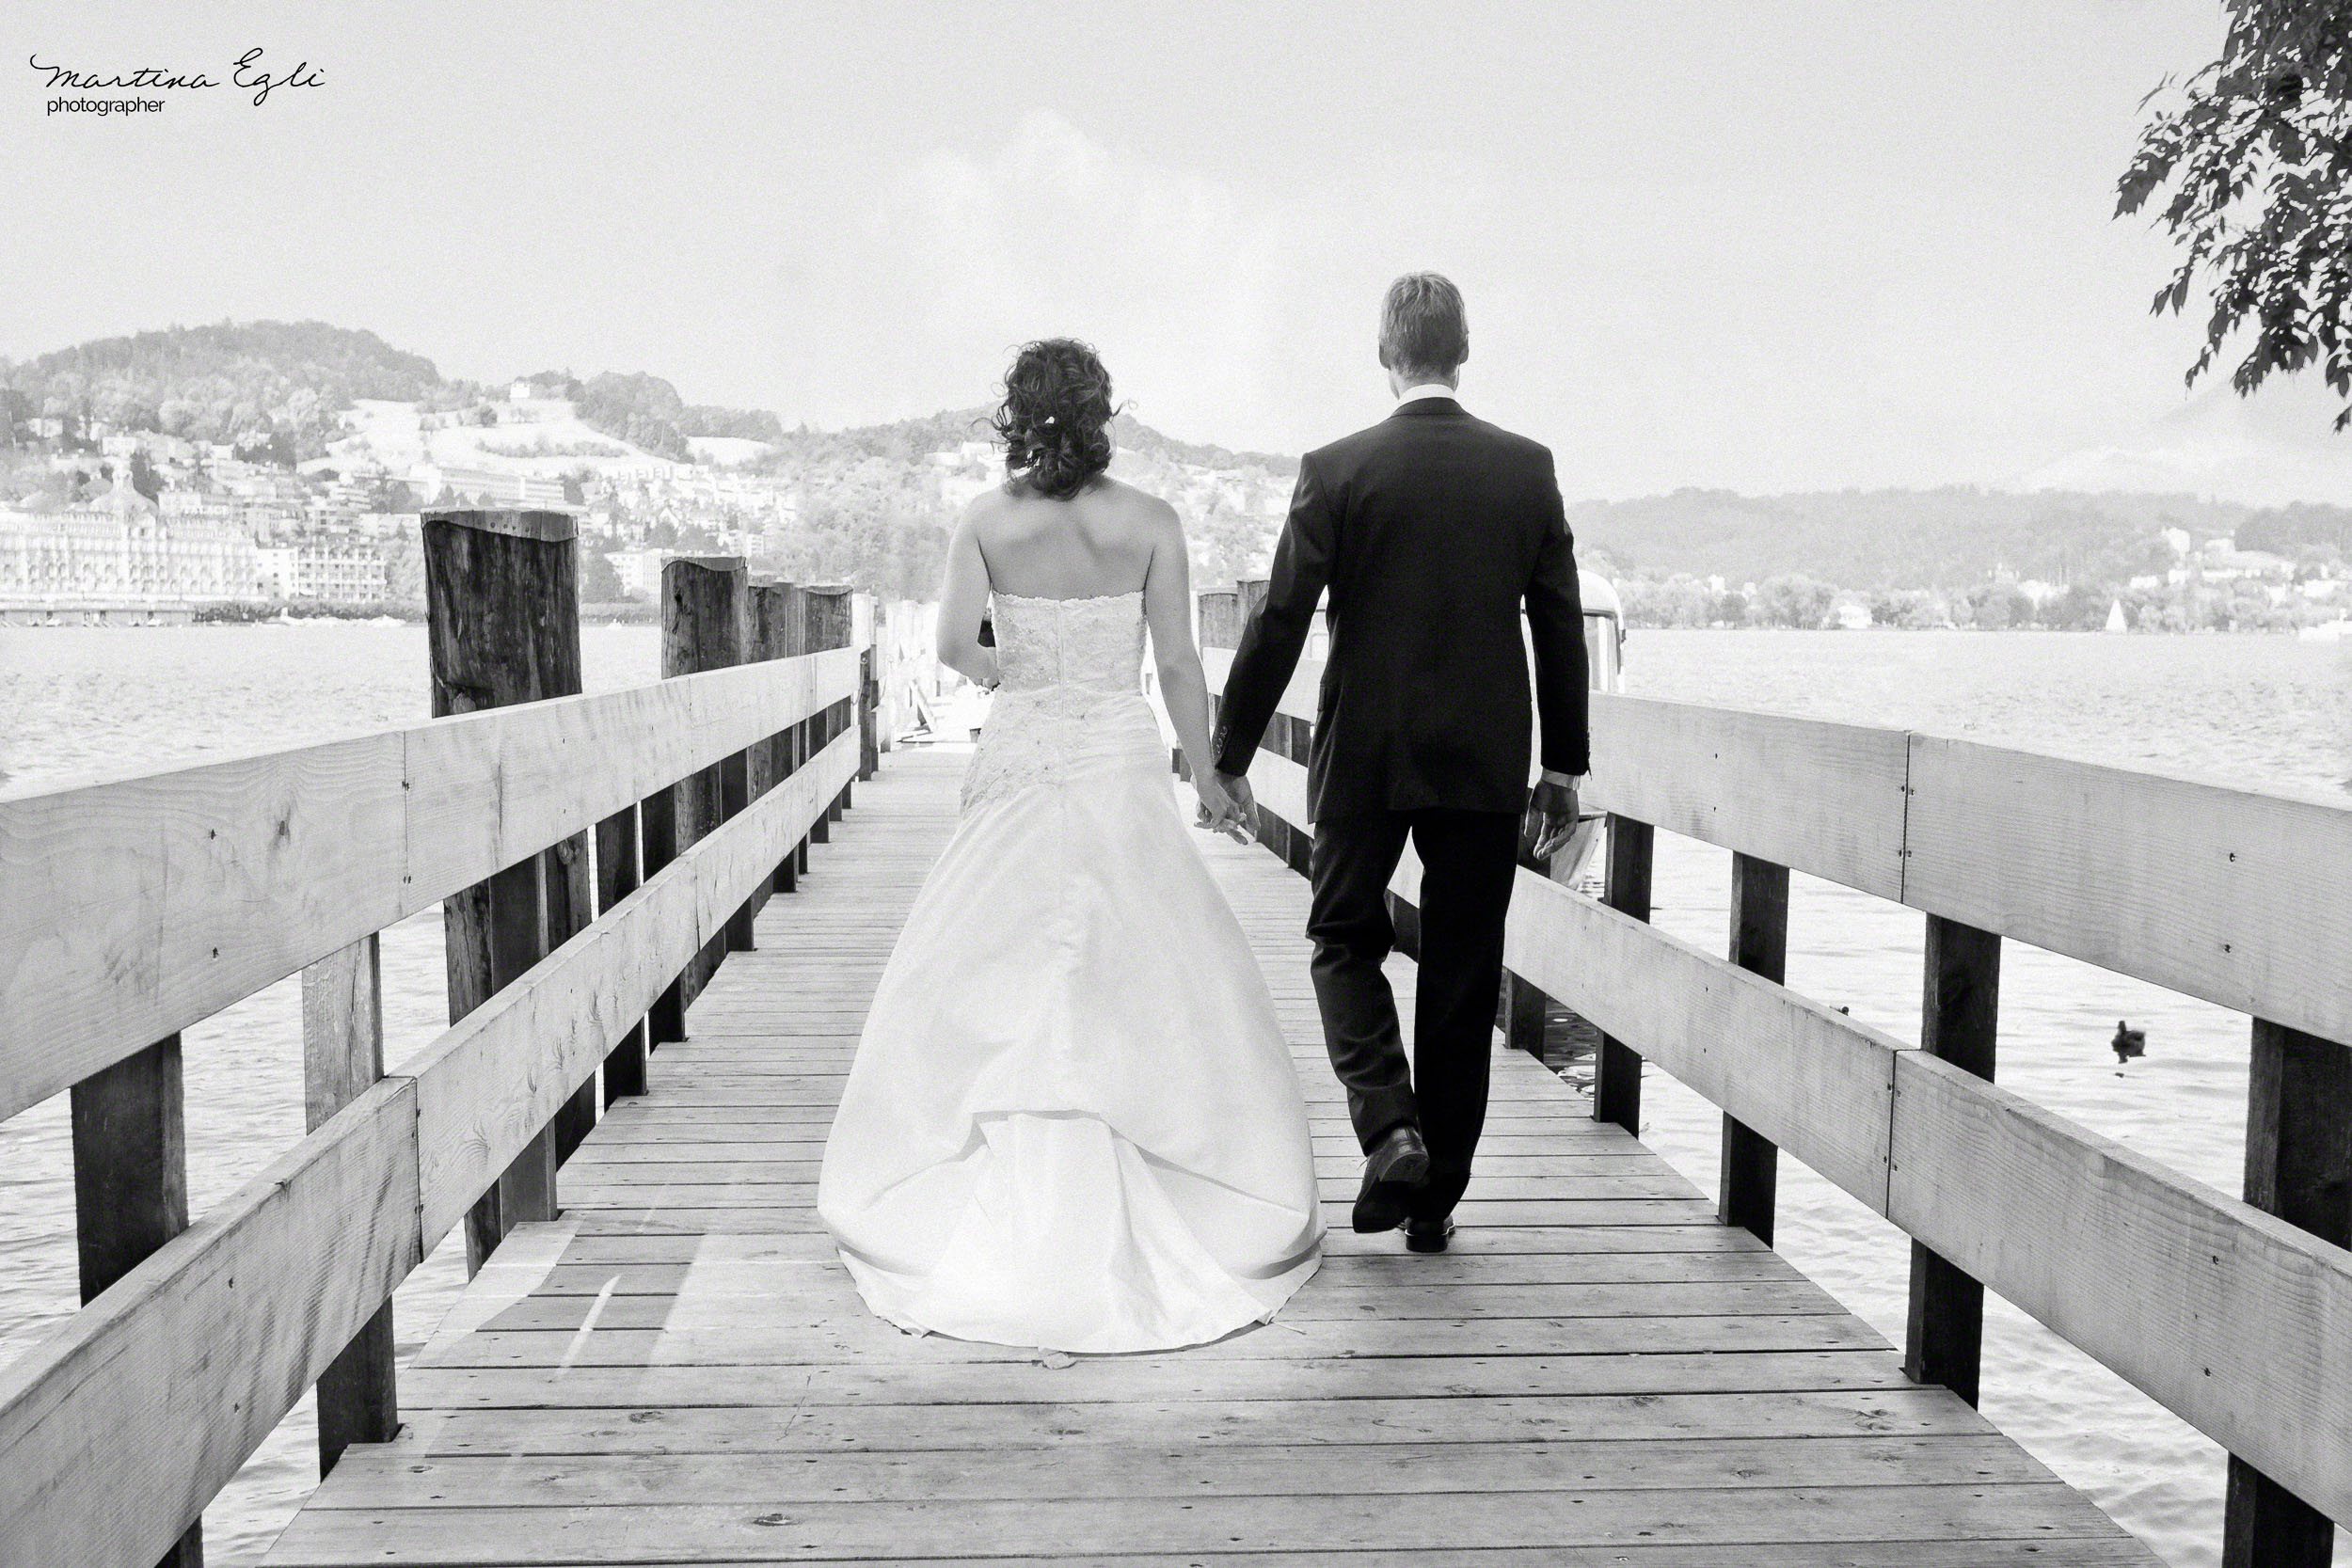 A Bride and Groom walk along a pier